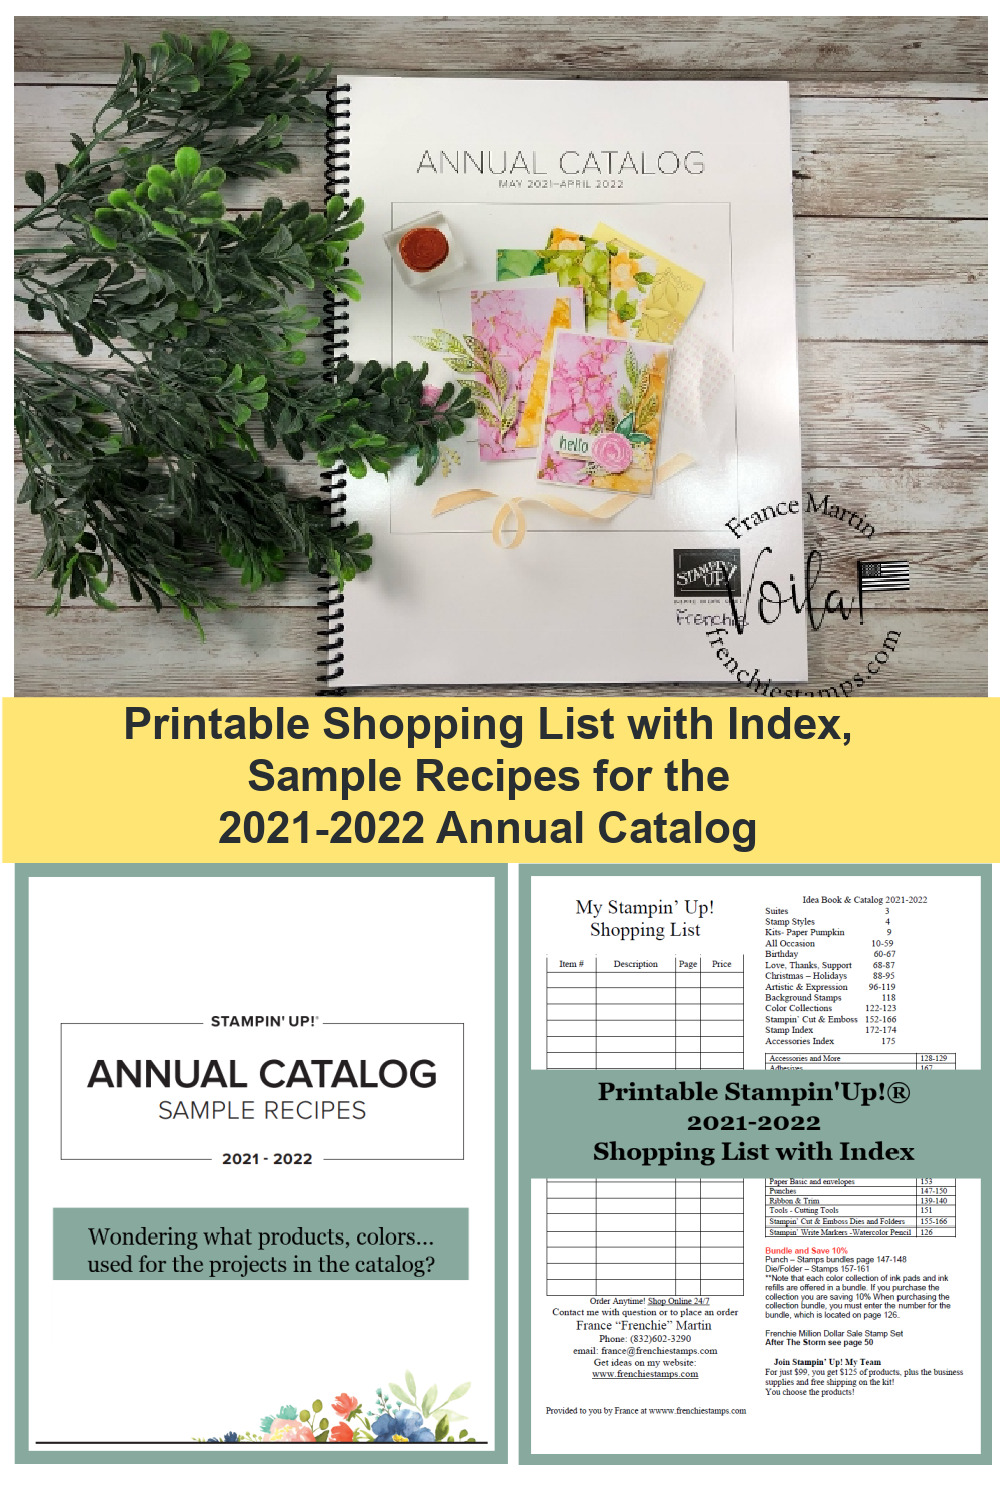 New 2021-2022 Catalog Sample Recipes Available Plus Extra Rewards